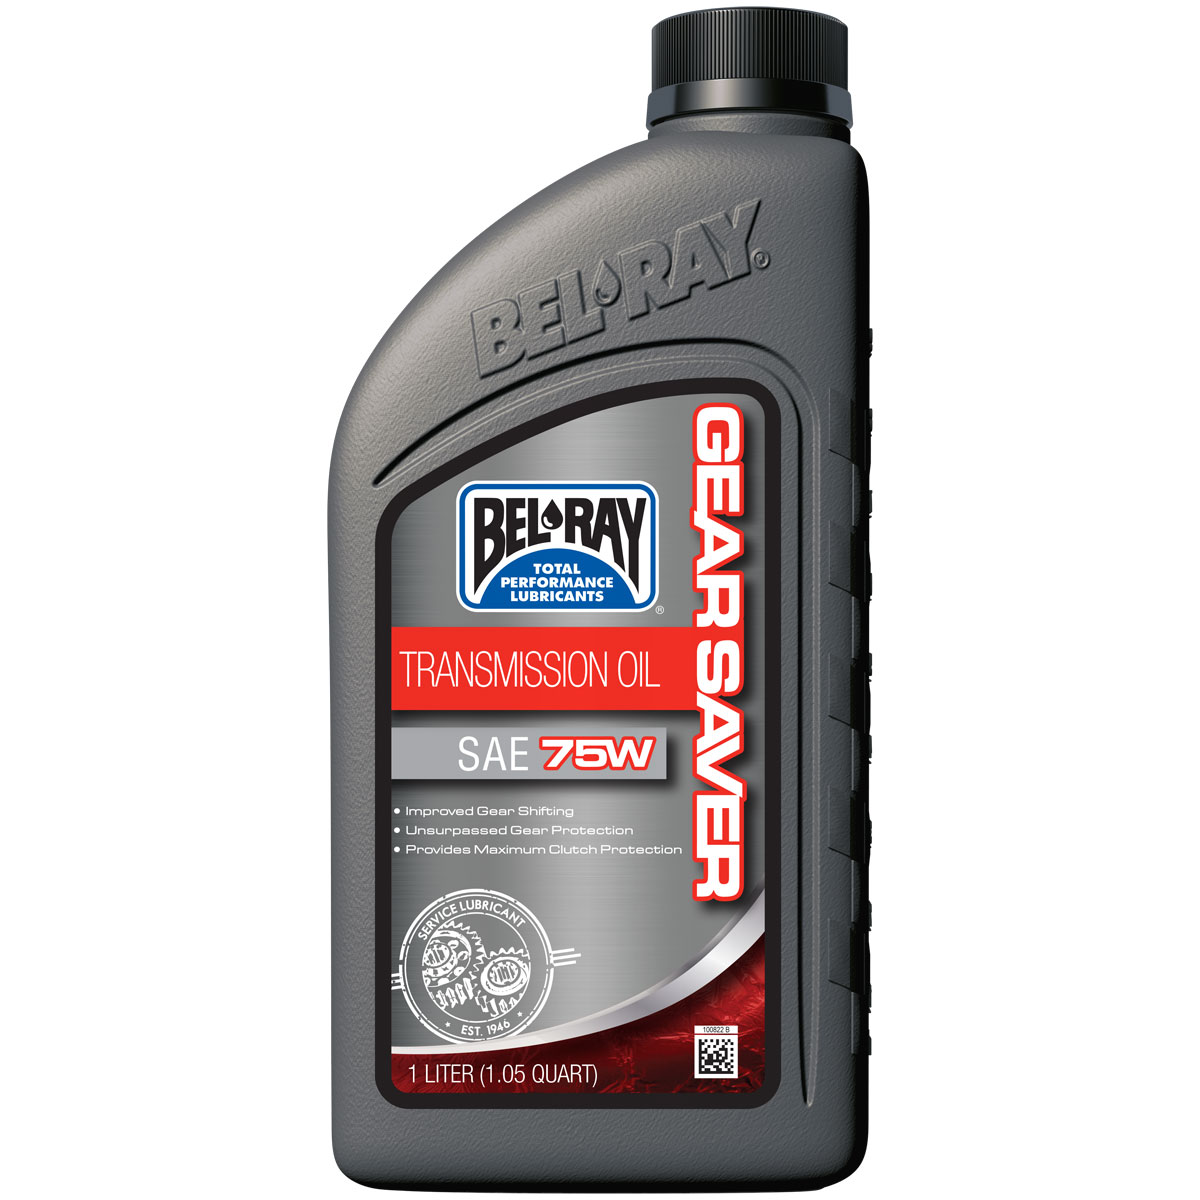 Bel-Ray 75W Gear Saver Transmission/Hypoid Oil Liter